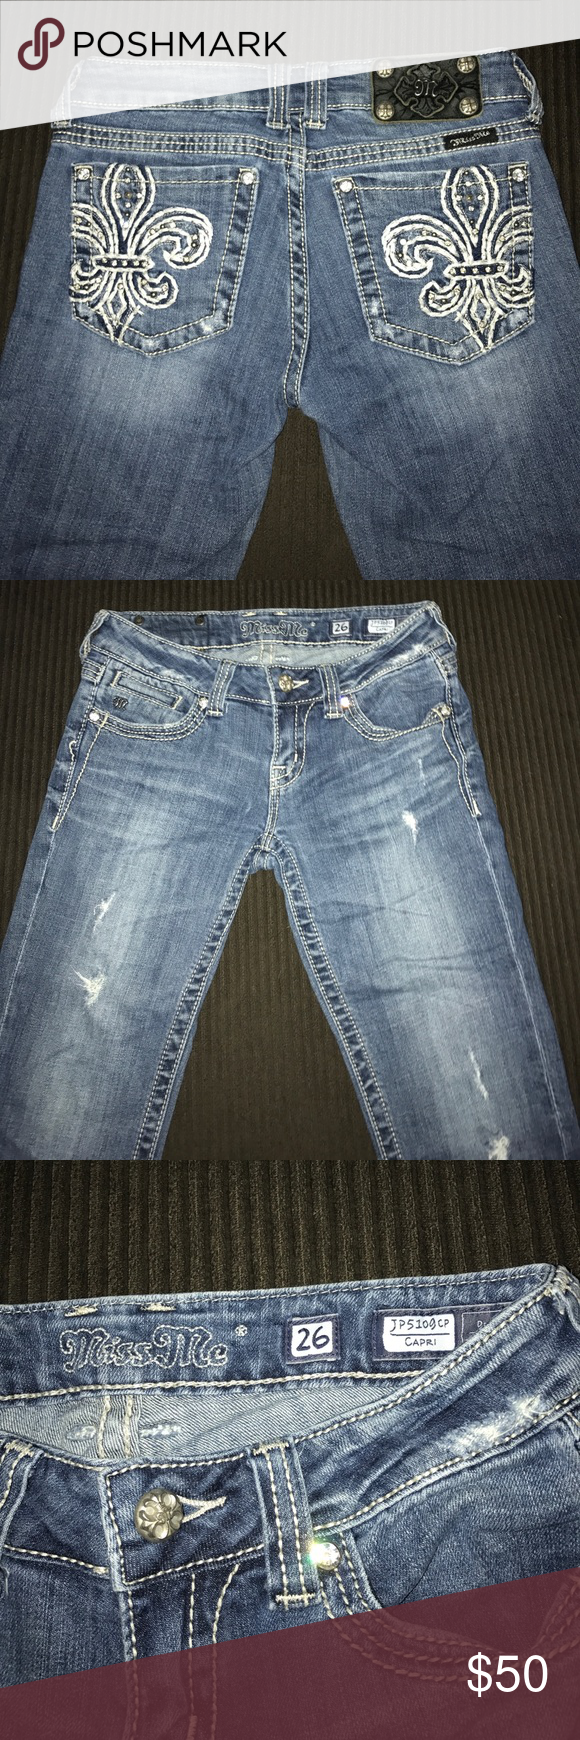 Miss me capris Miss me jean capris .. has cute design on back pockets .. not a lot of bling on these .. has the distressed look wore 2x Miss Me Jeans